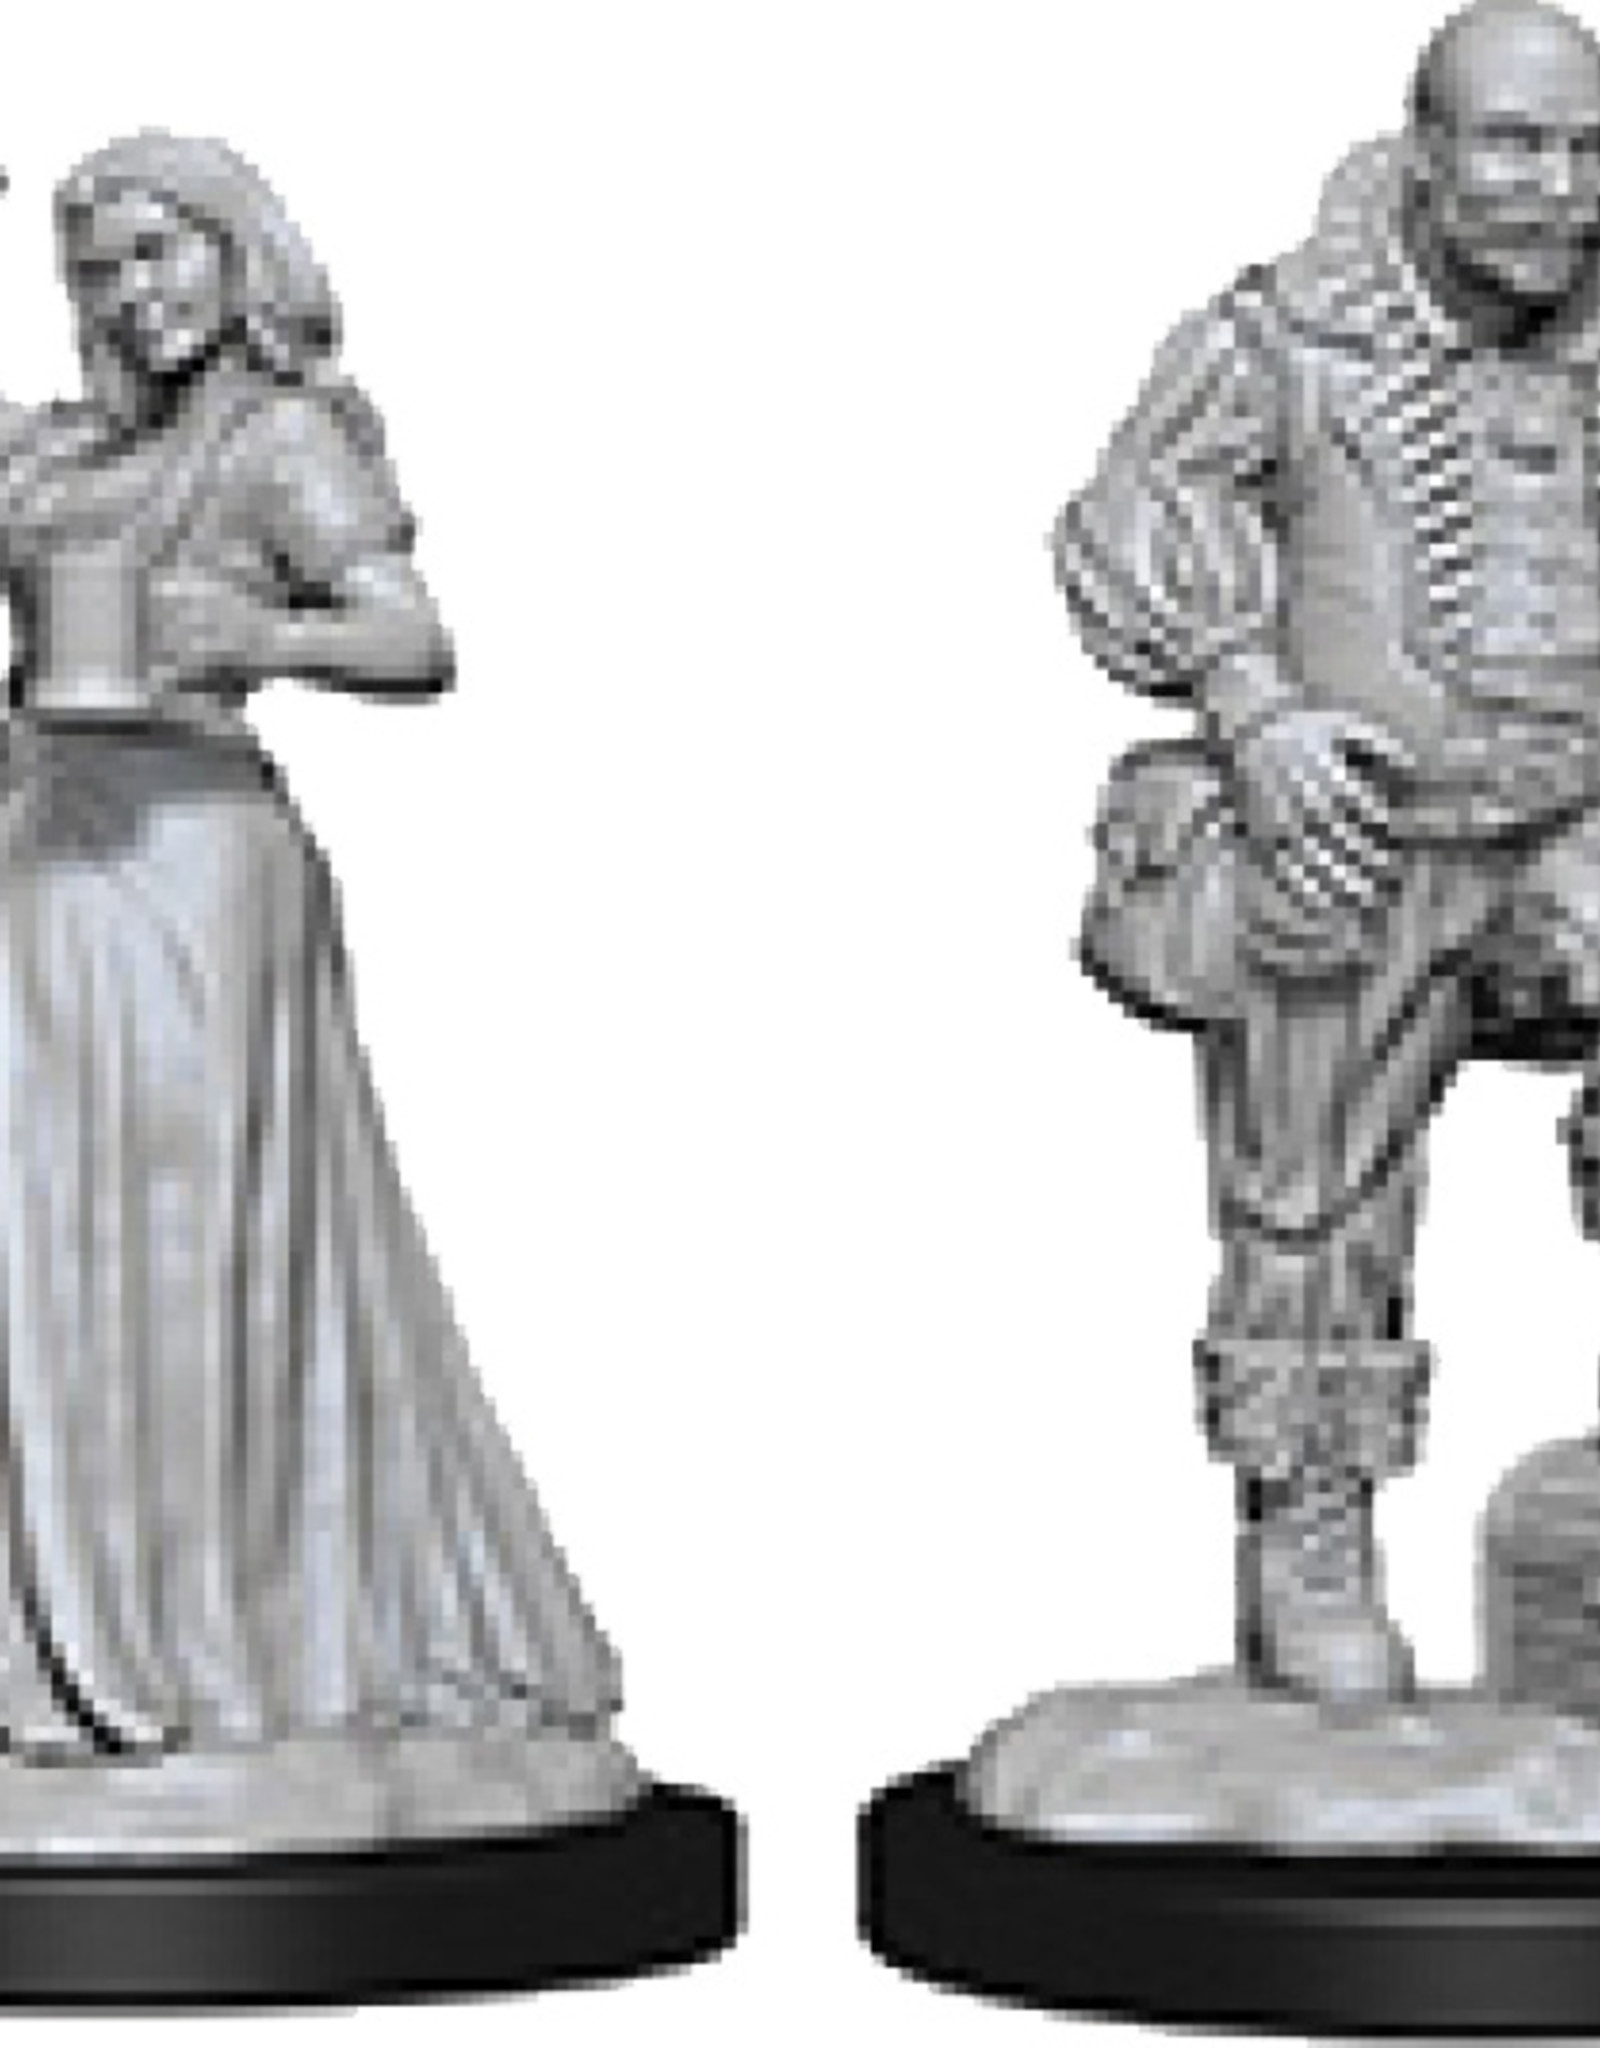 Pathfinder Deep Cuts: Merchants (Serving Girl/Merchant)